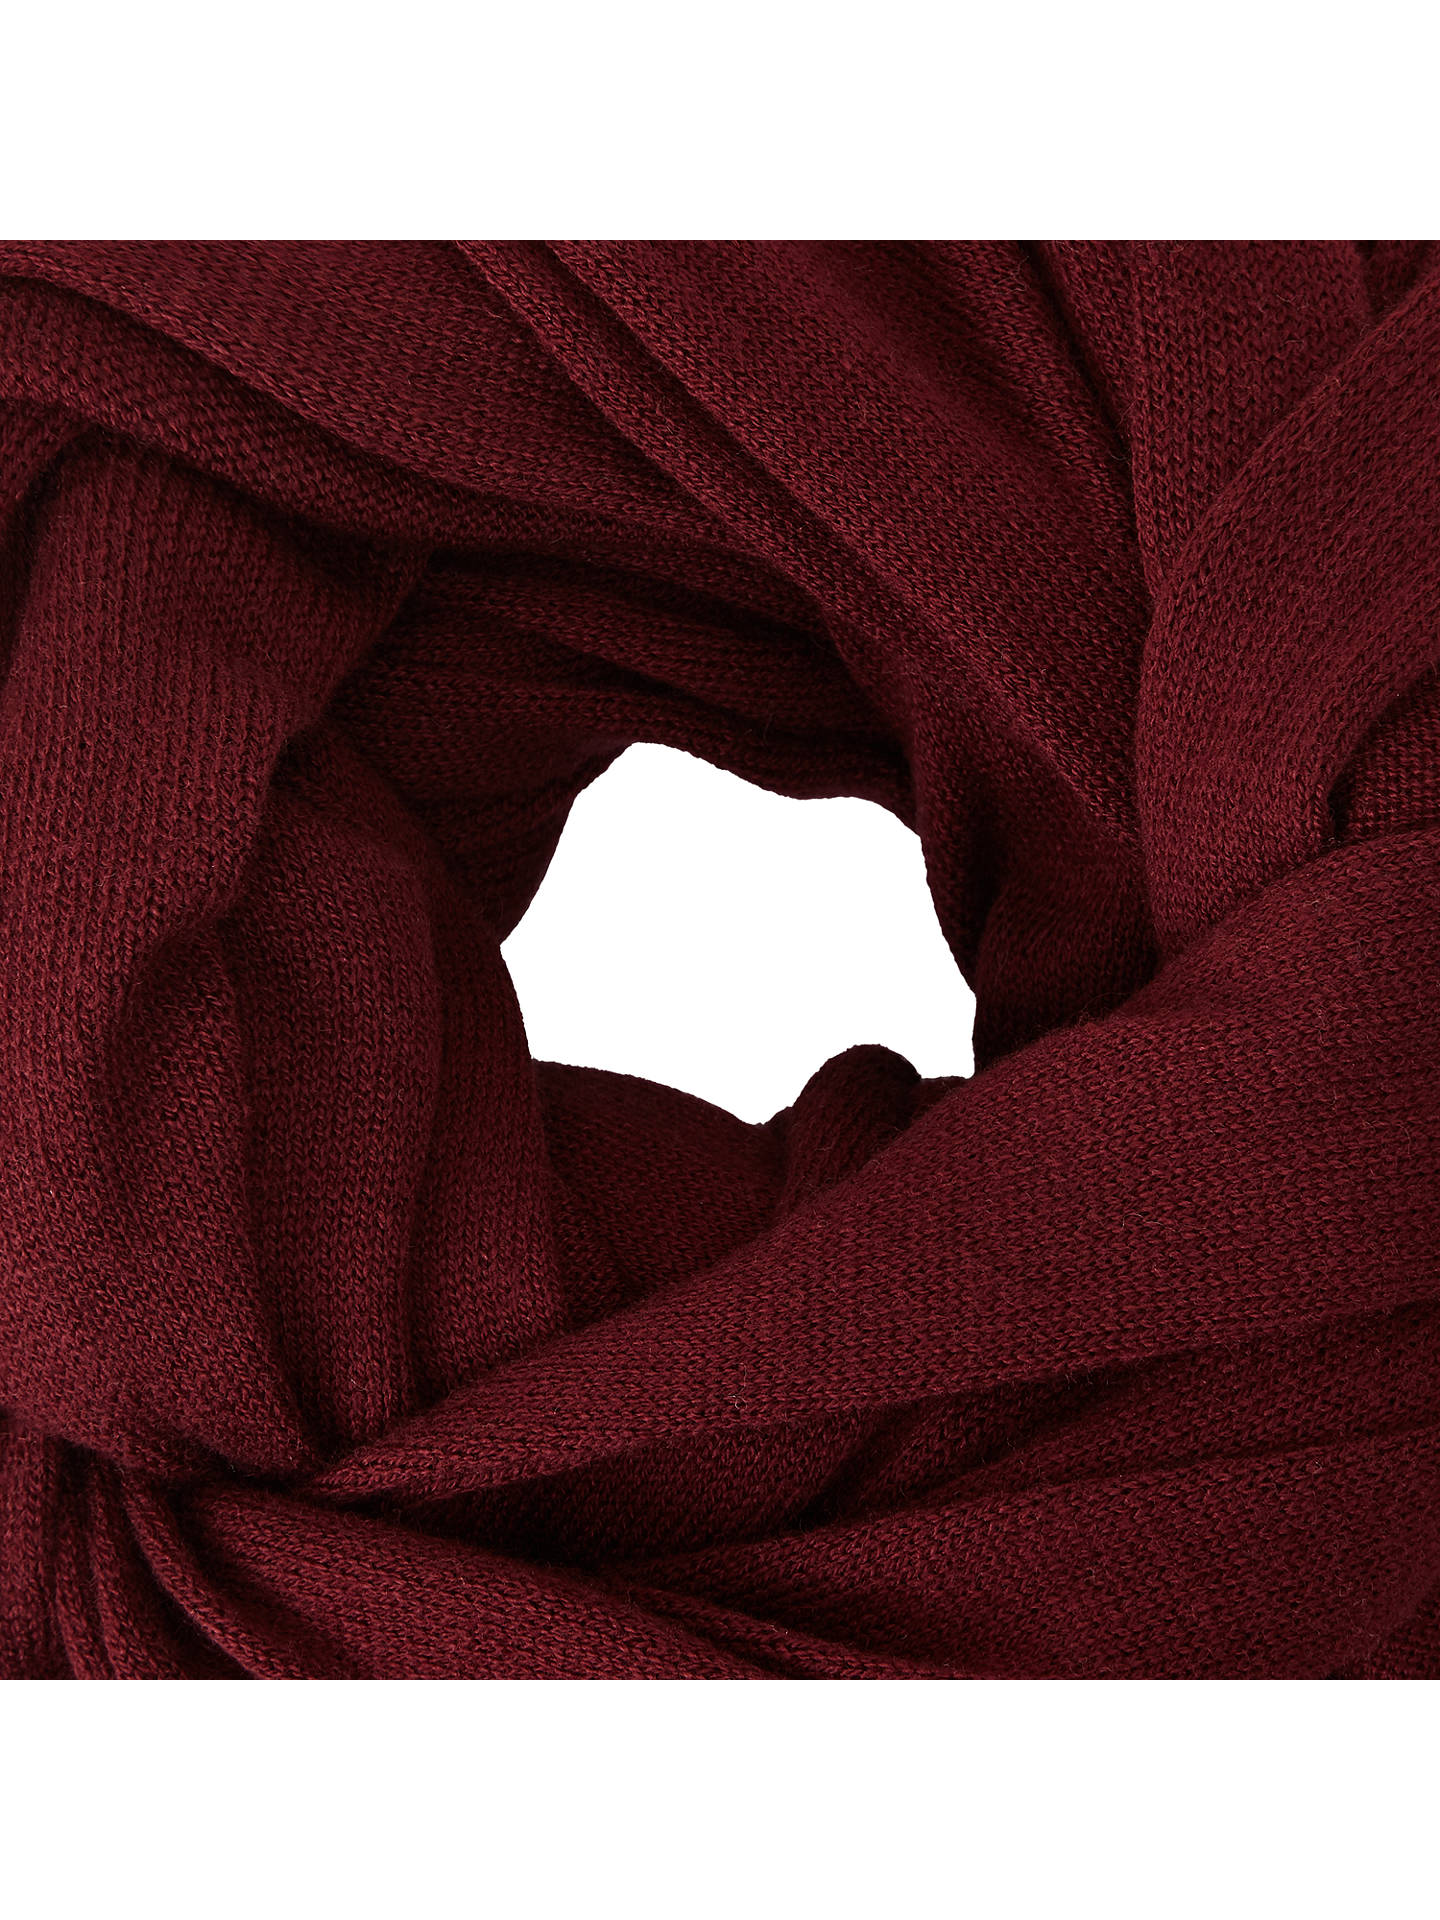 BuyJohn Lewis & Partners Plain Knit Scarf, Claret Online at johnlewis.com